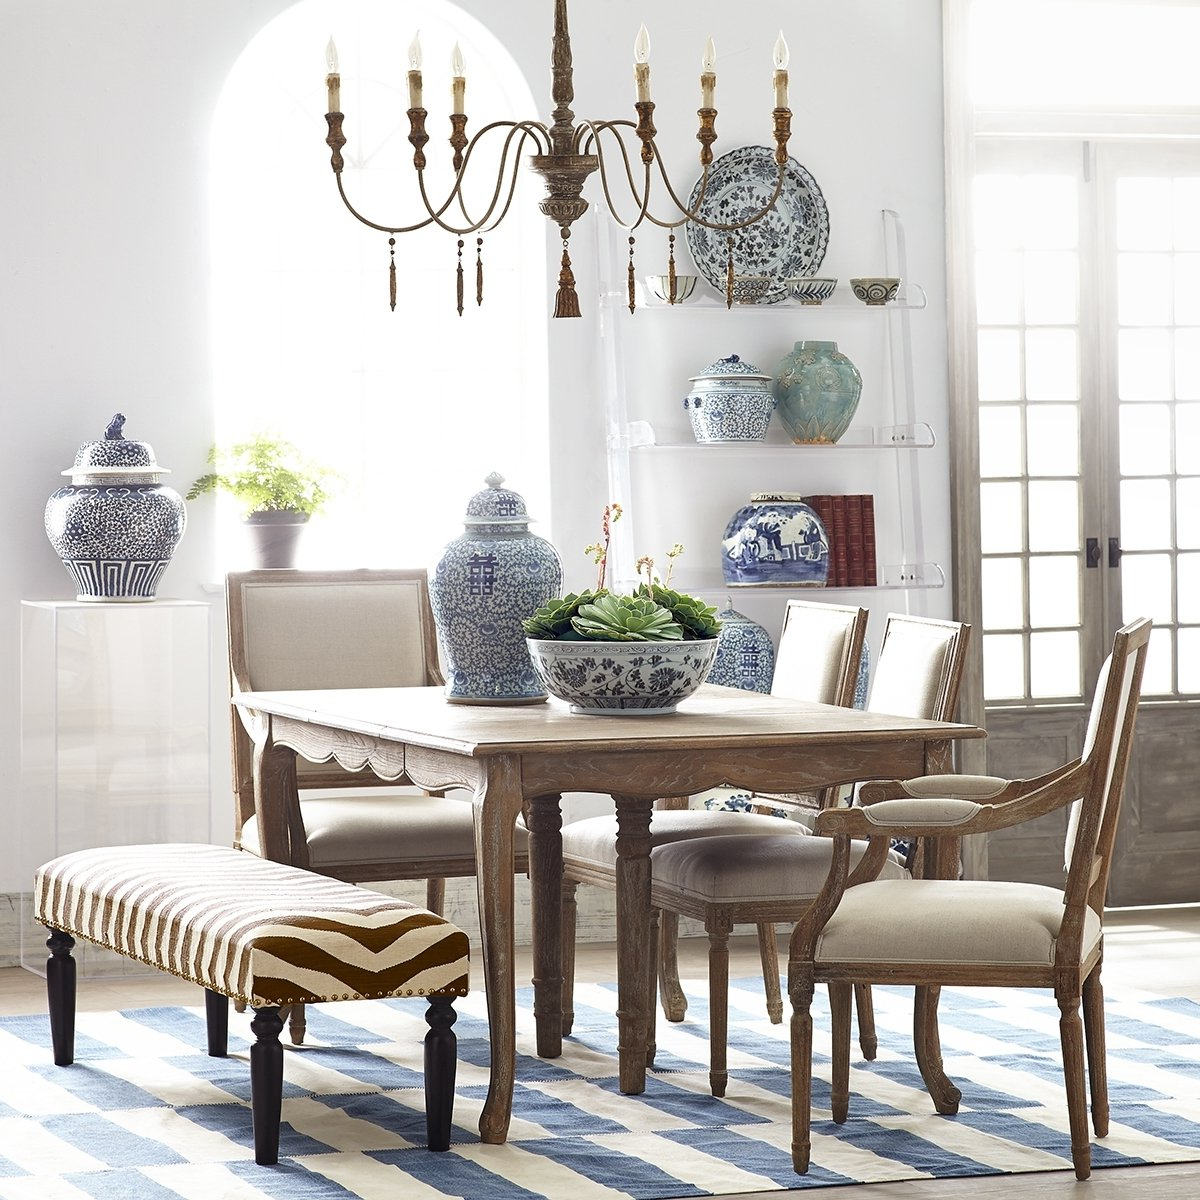 Trendy Walnut And Antique White Finish Contemporary Country Dining Tables With Regard To 50+ French Country Dining Table You'll Love In 2020 – Visual (View 6 of 30)